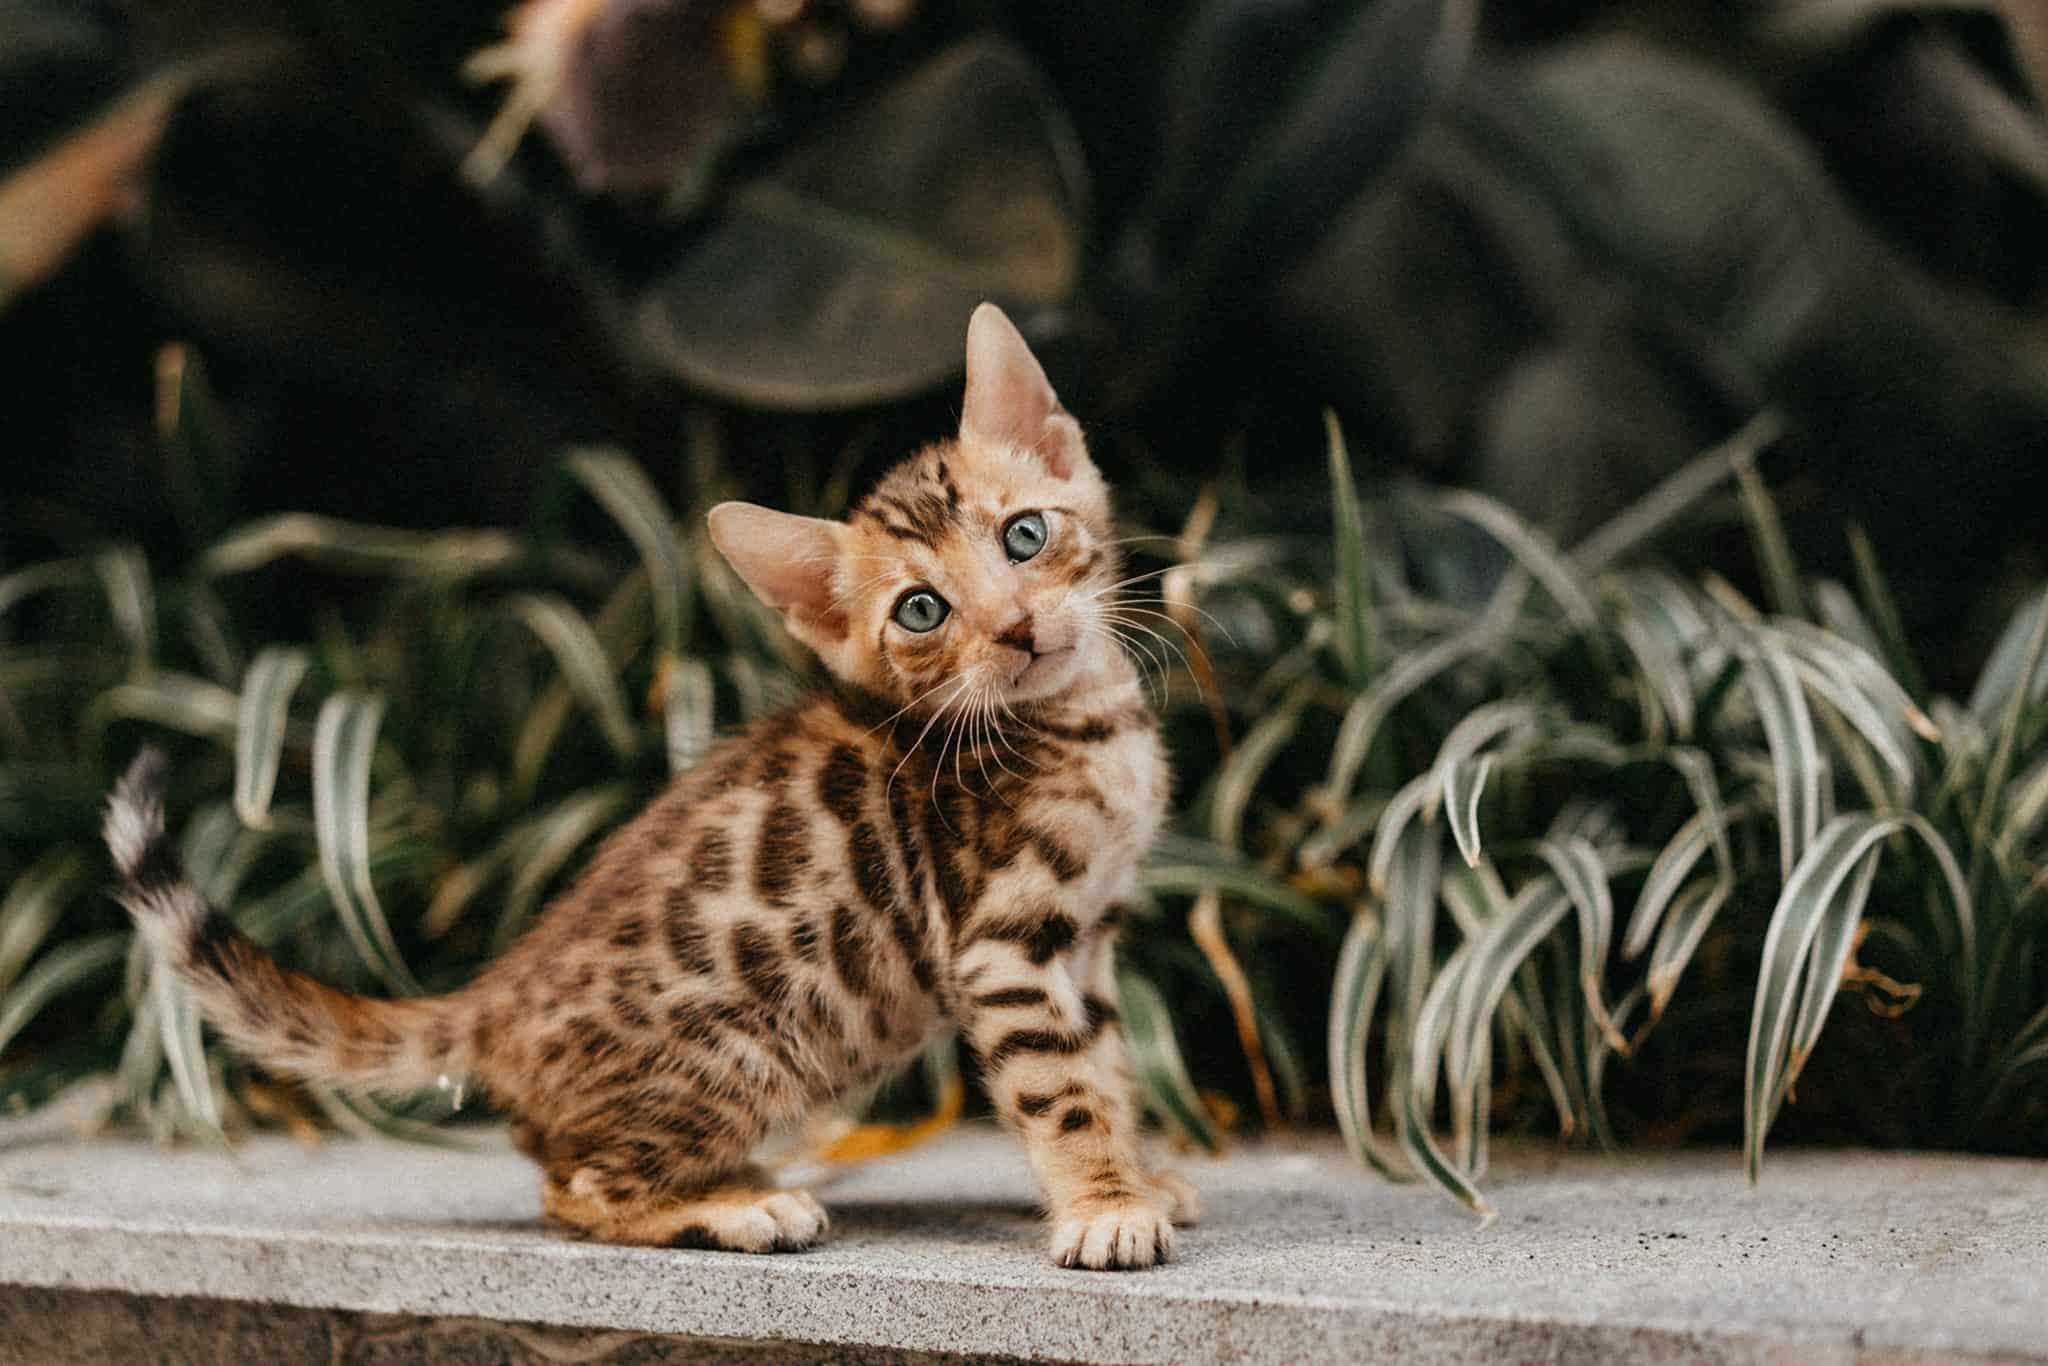 kittens are beautiful animals, this one is a tiger cat waiting sitting in a garden